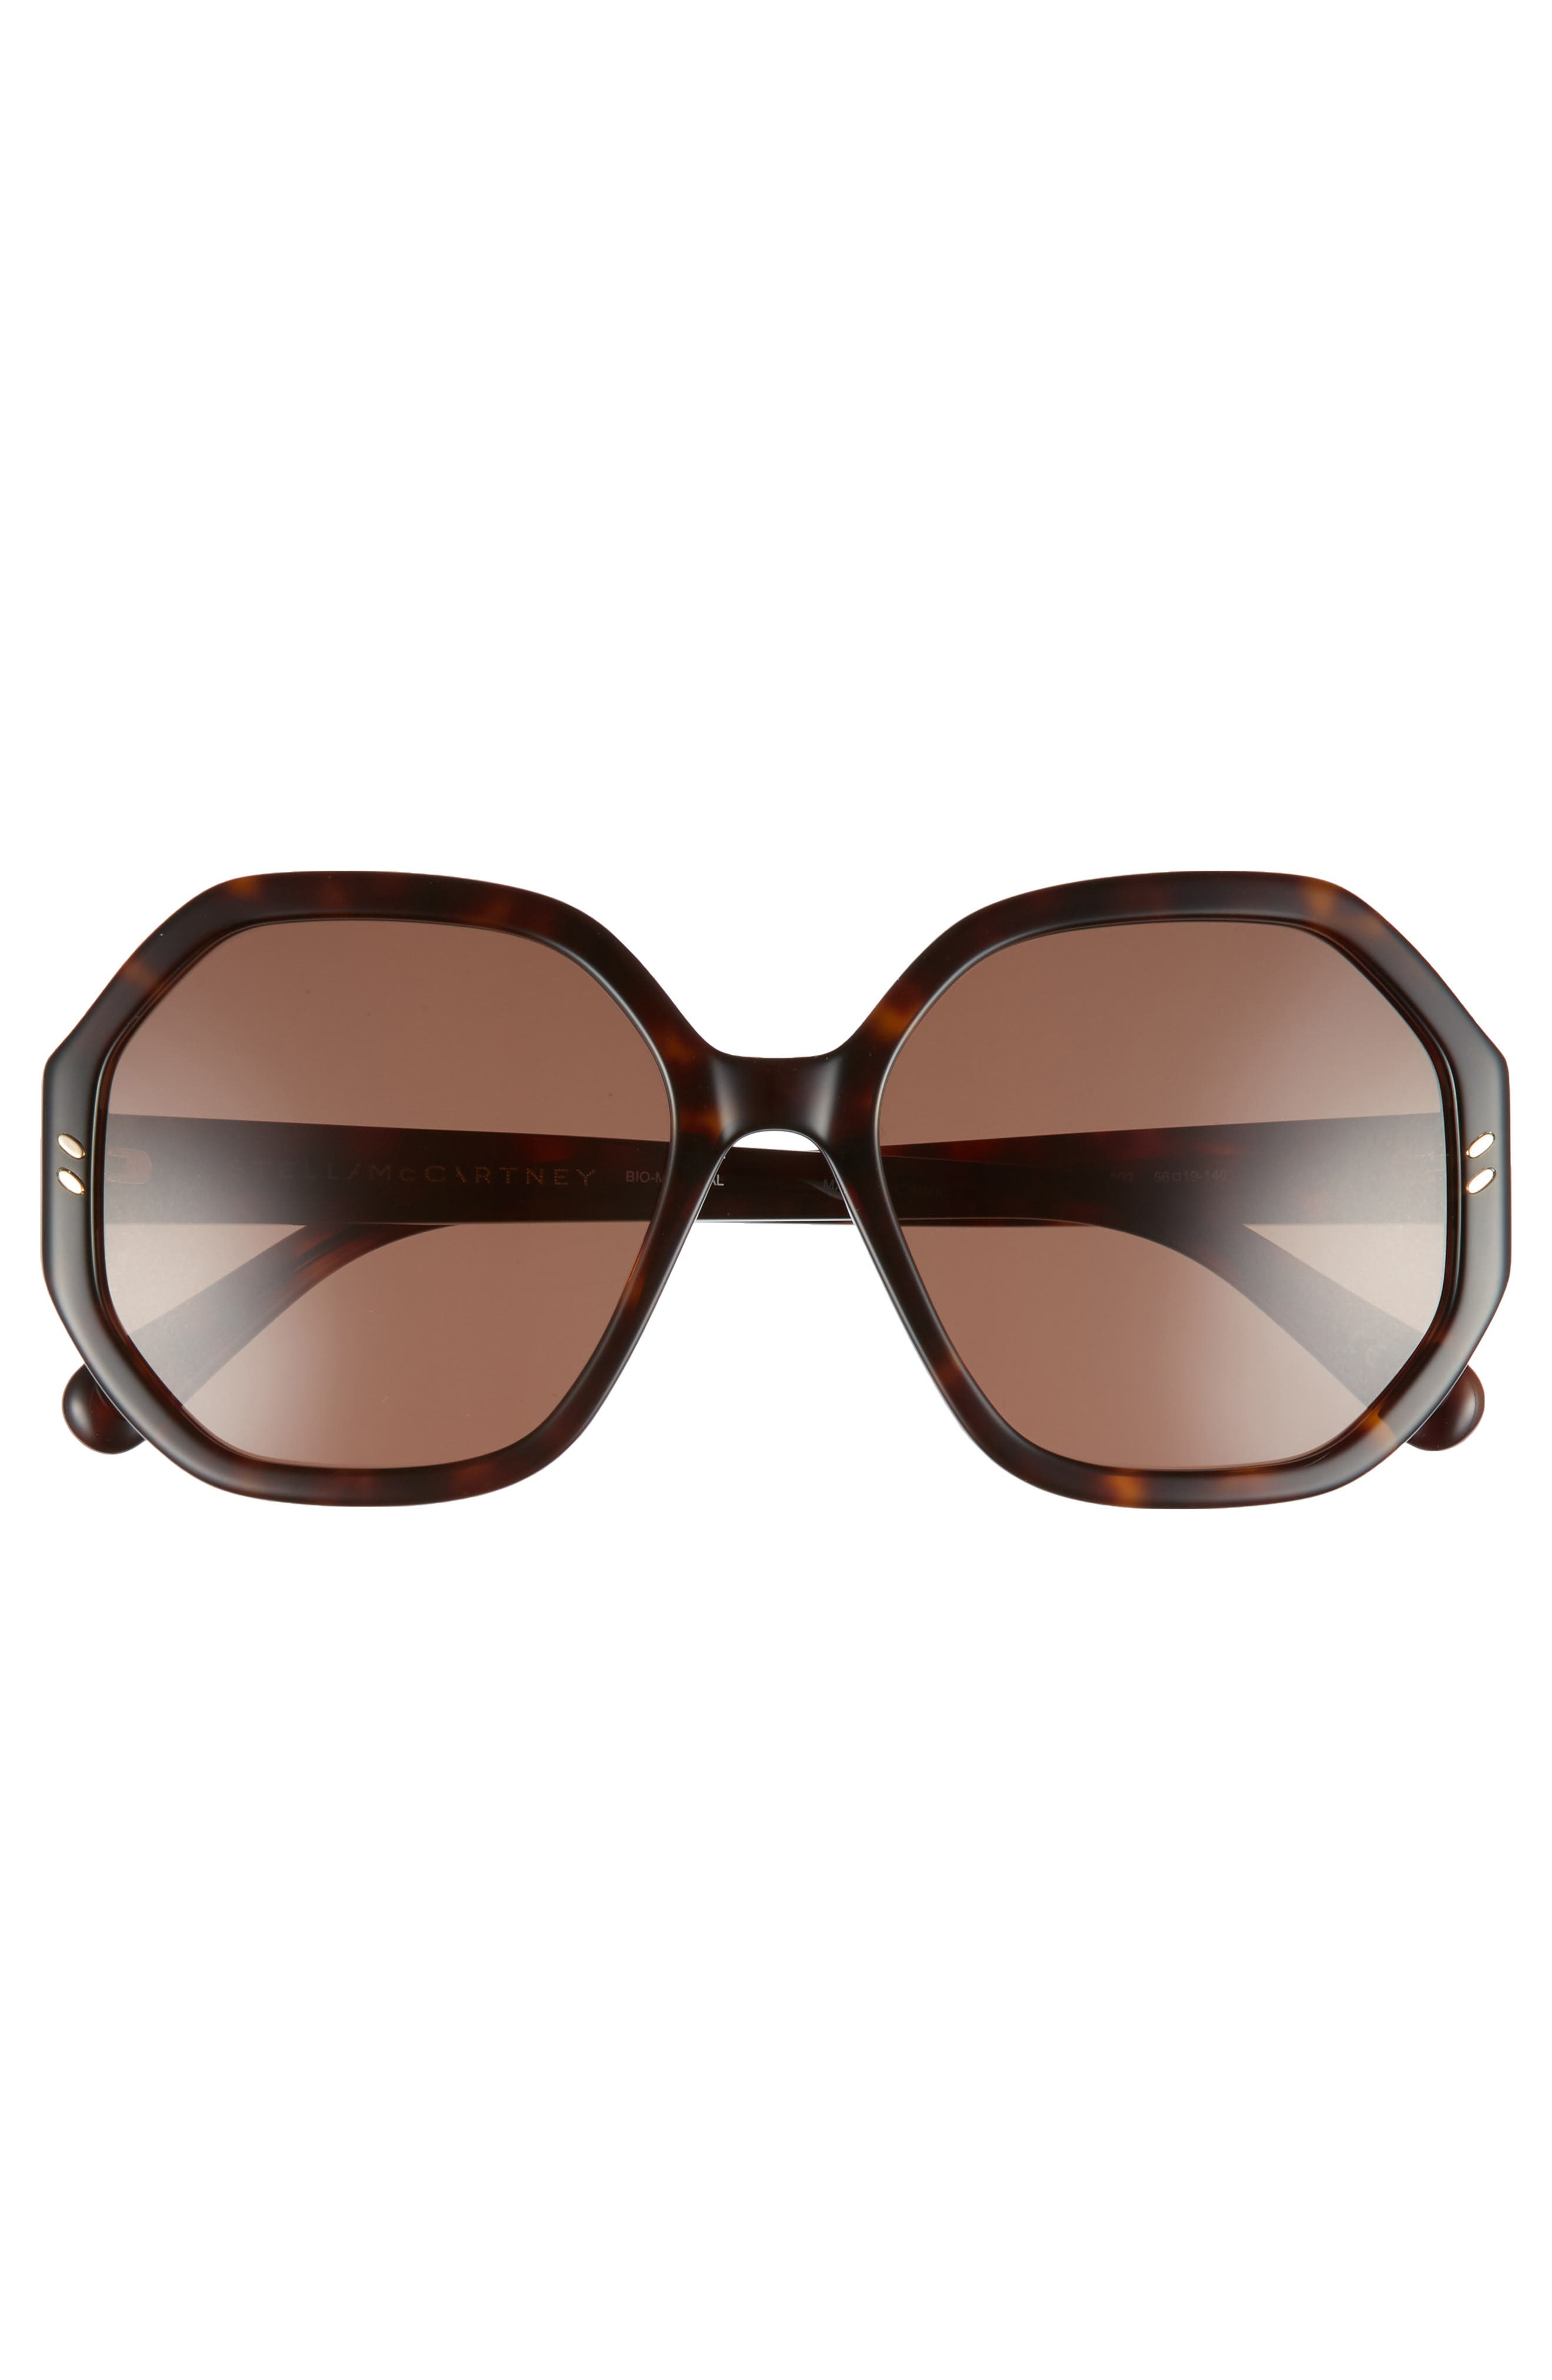 56mm Hexagonal Sunglasses,                             Alternate thumbnail 3, color,                             Dark Havana